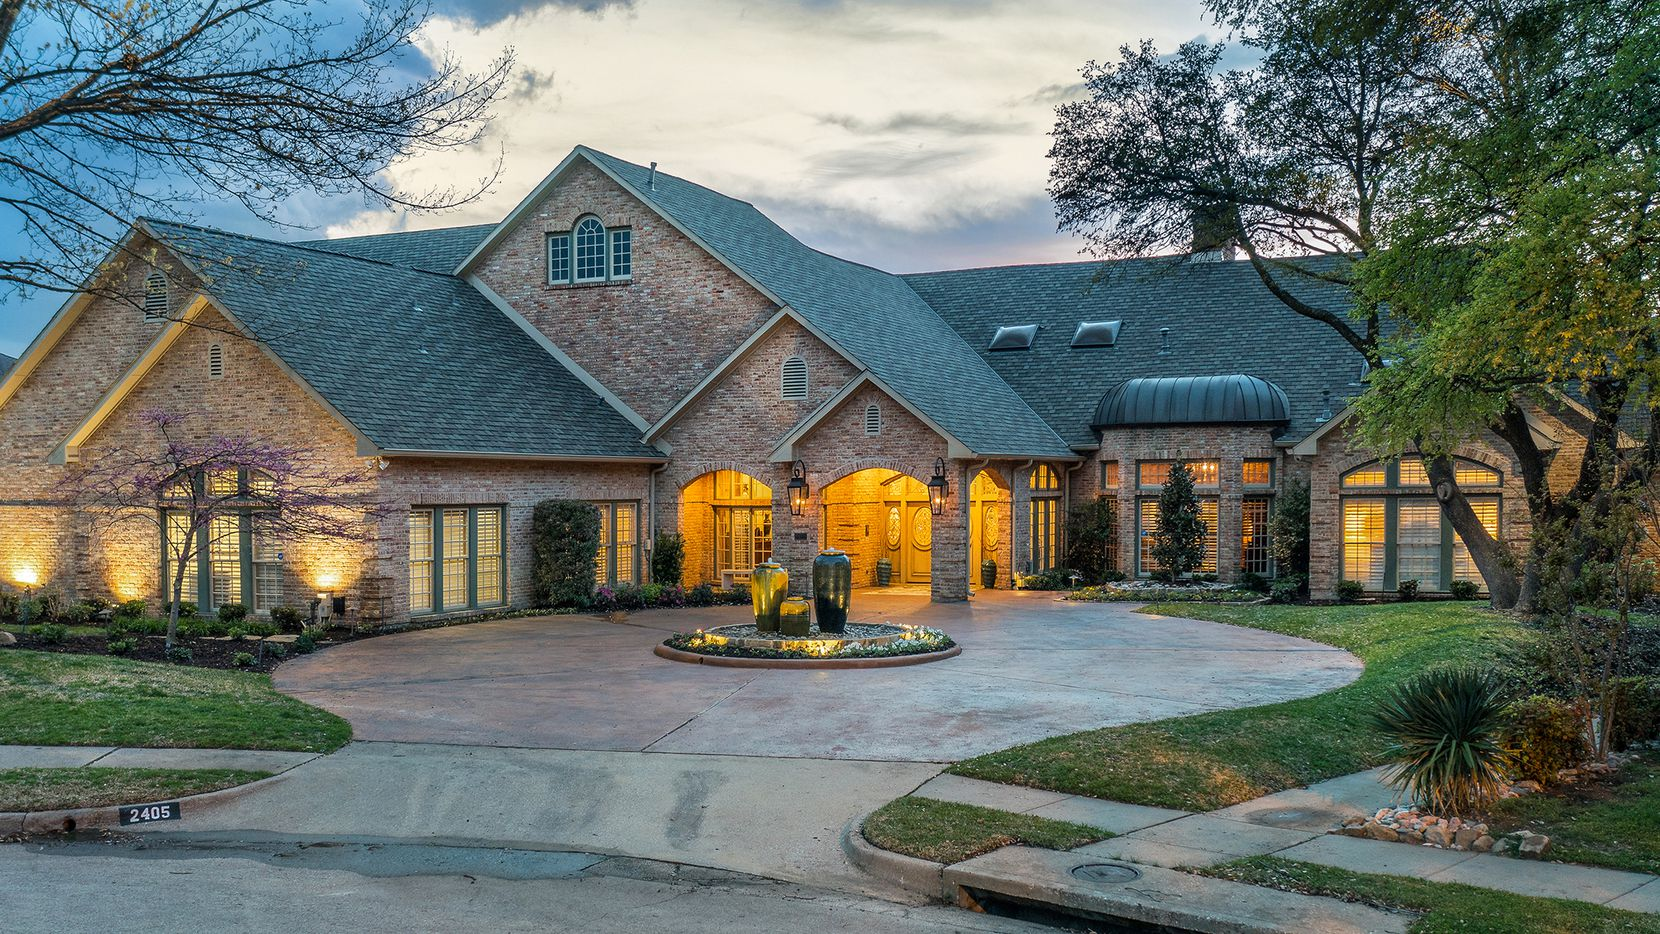 Listed for $2,225,000, the estate at 2405 Colonial Drive in Plano features a flexible floor plan, an apartment and golf course and creek views.